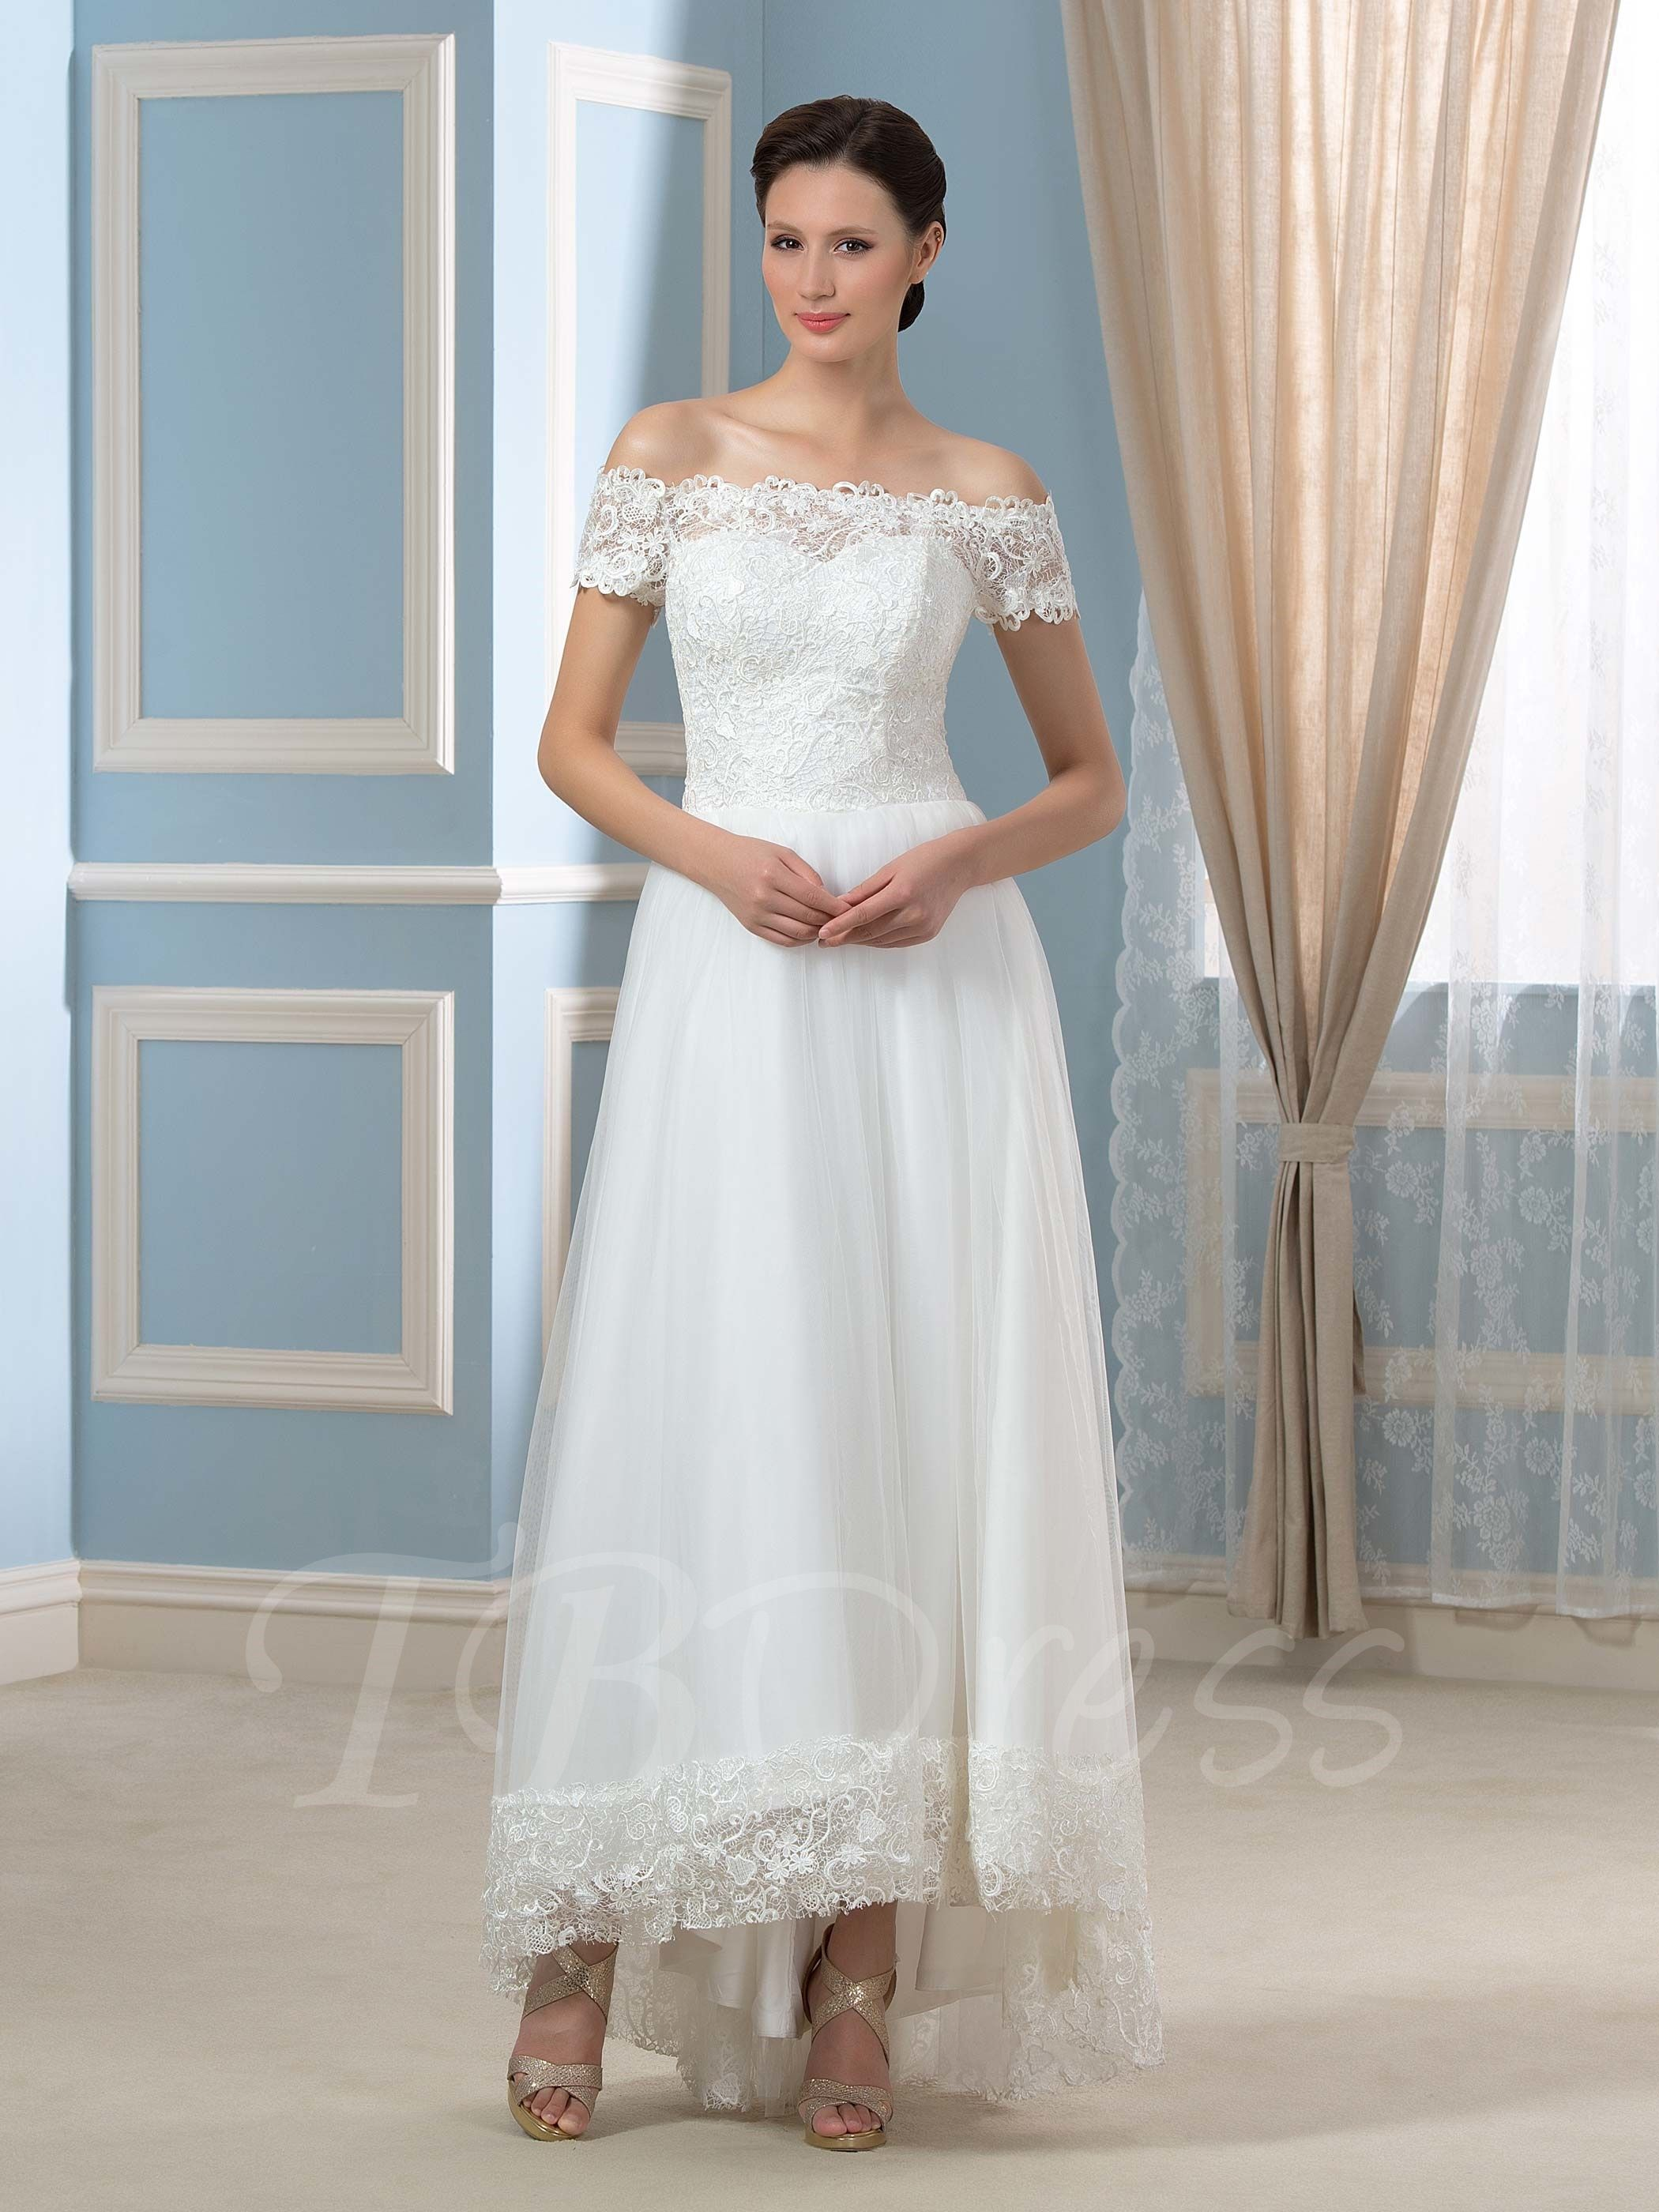 db4b8cabe040 Tbdress.com offers high quality Off-The-Shoulder Short Sleeve A-Line  Asymmetry Lace Tulle Wedding Dress Latest Wedding Dresses unit price of $  136.99.